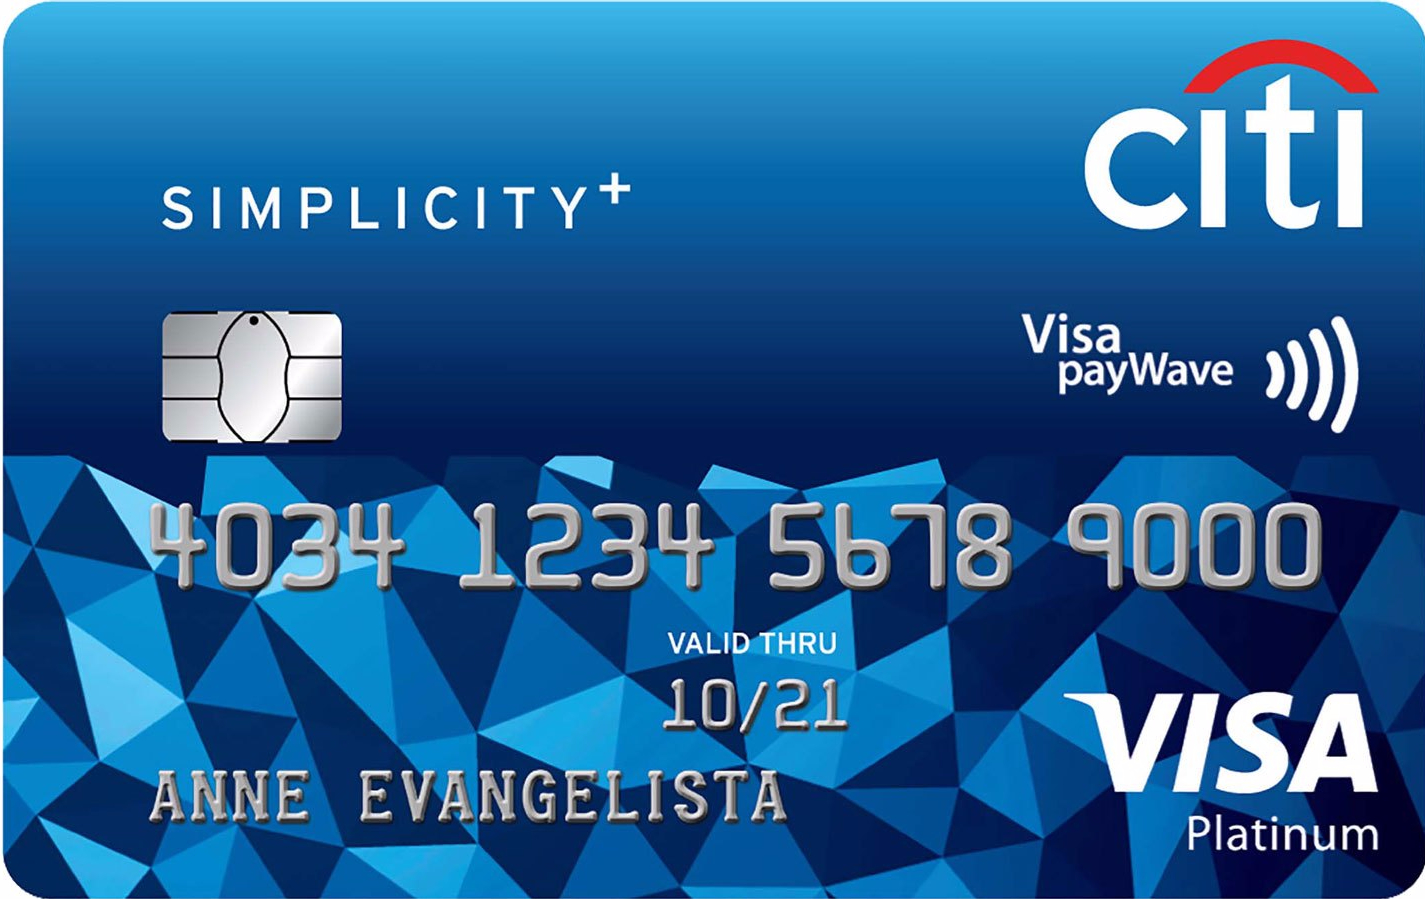 Keeping it simple with Citi Simplicity+ Card